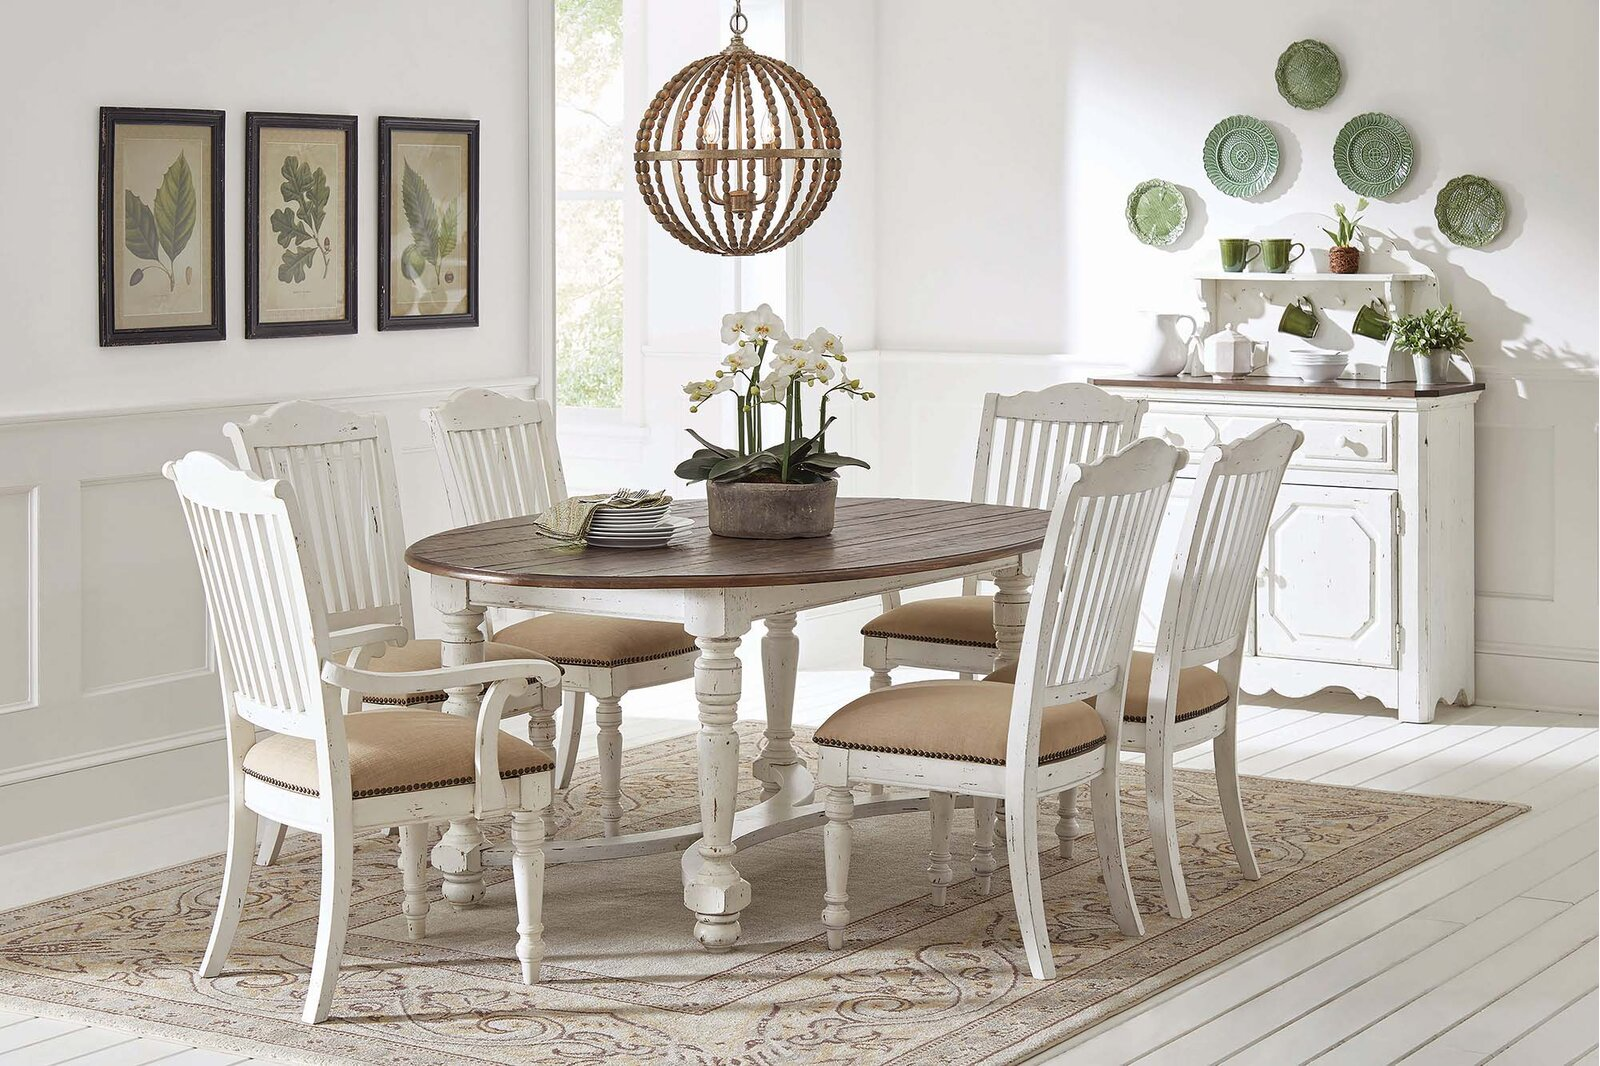 oval-farmhouse-dining-table-for-sale-online-rustic-distressed-white-furniture-with-wood-top-seats-eight-1